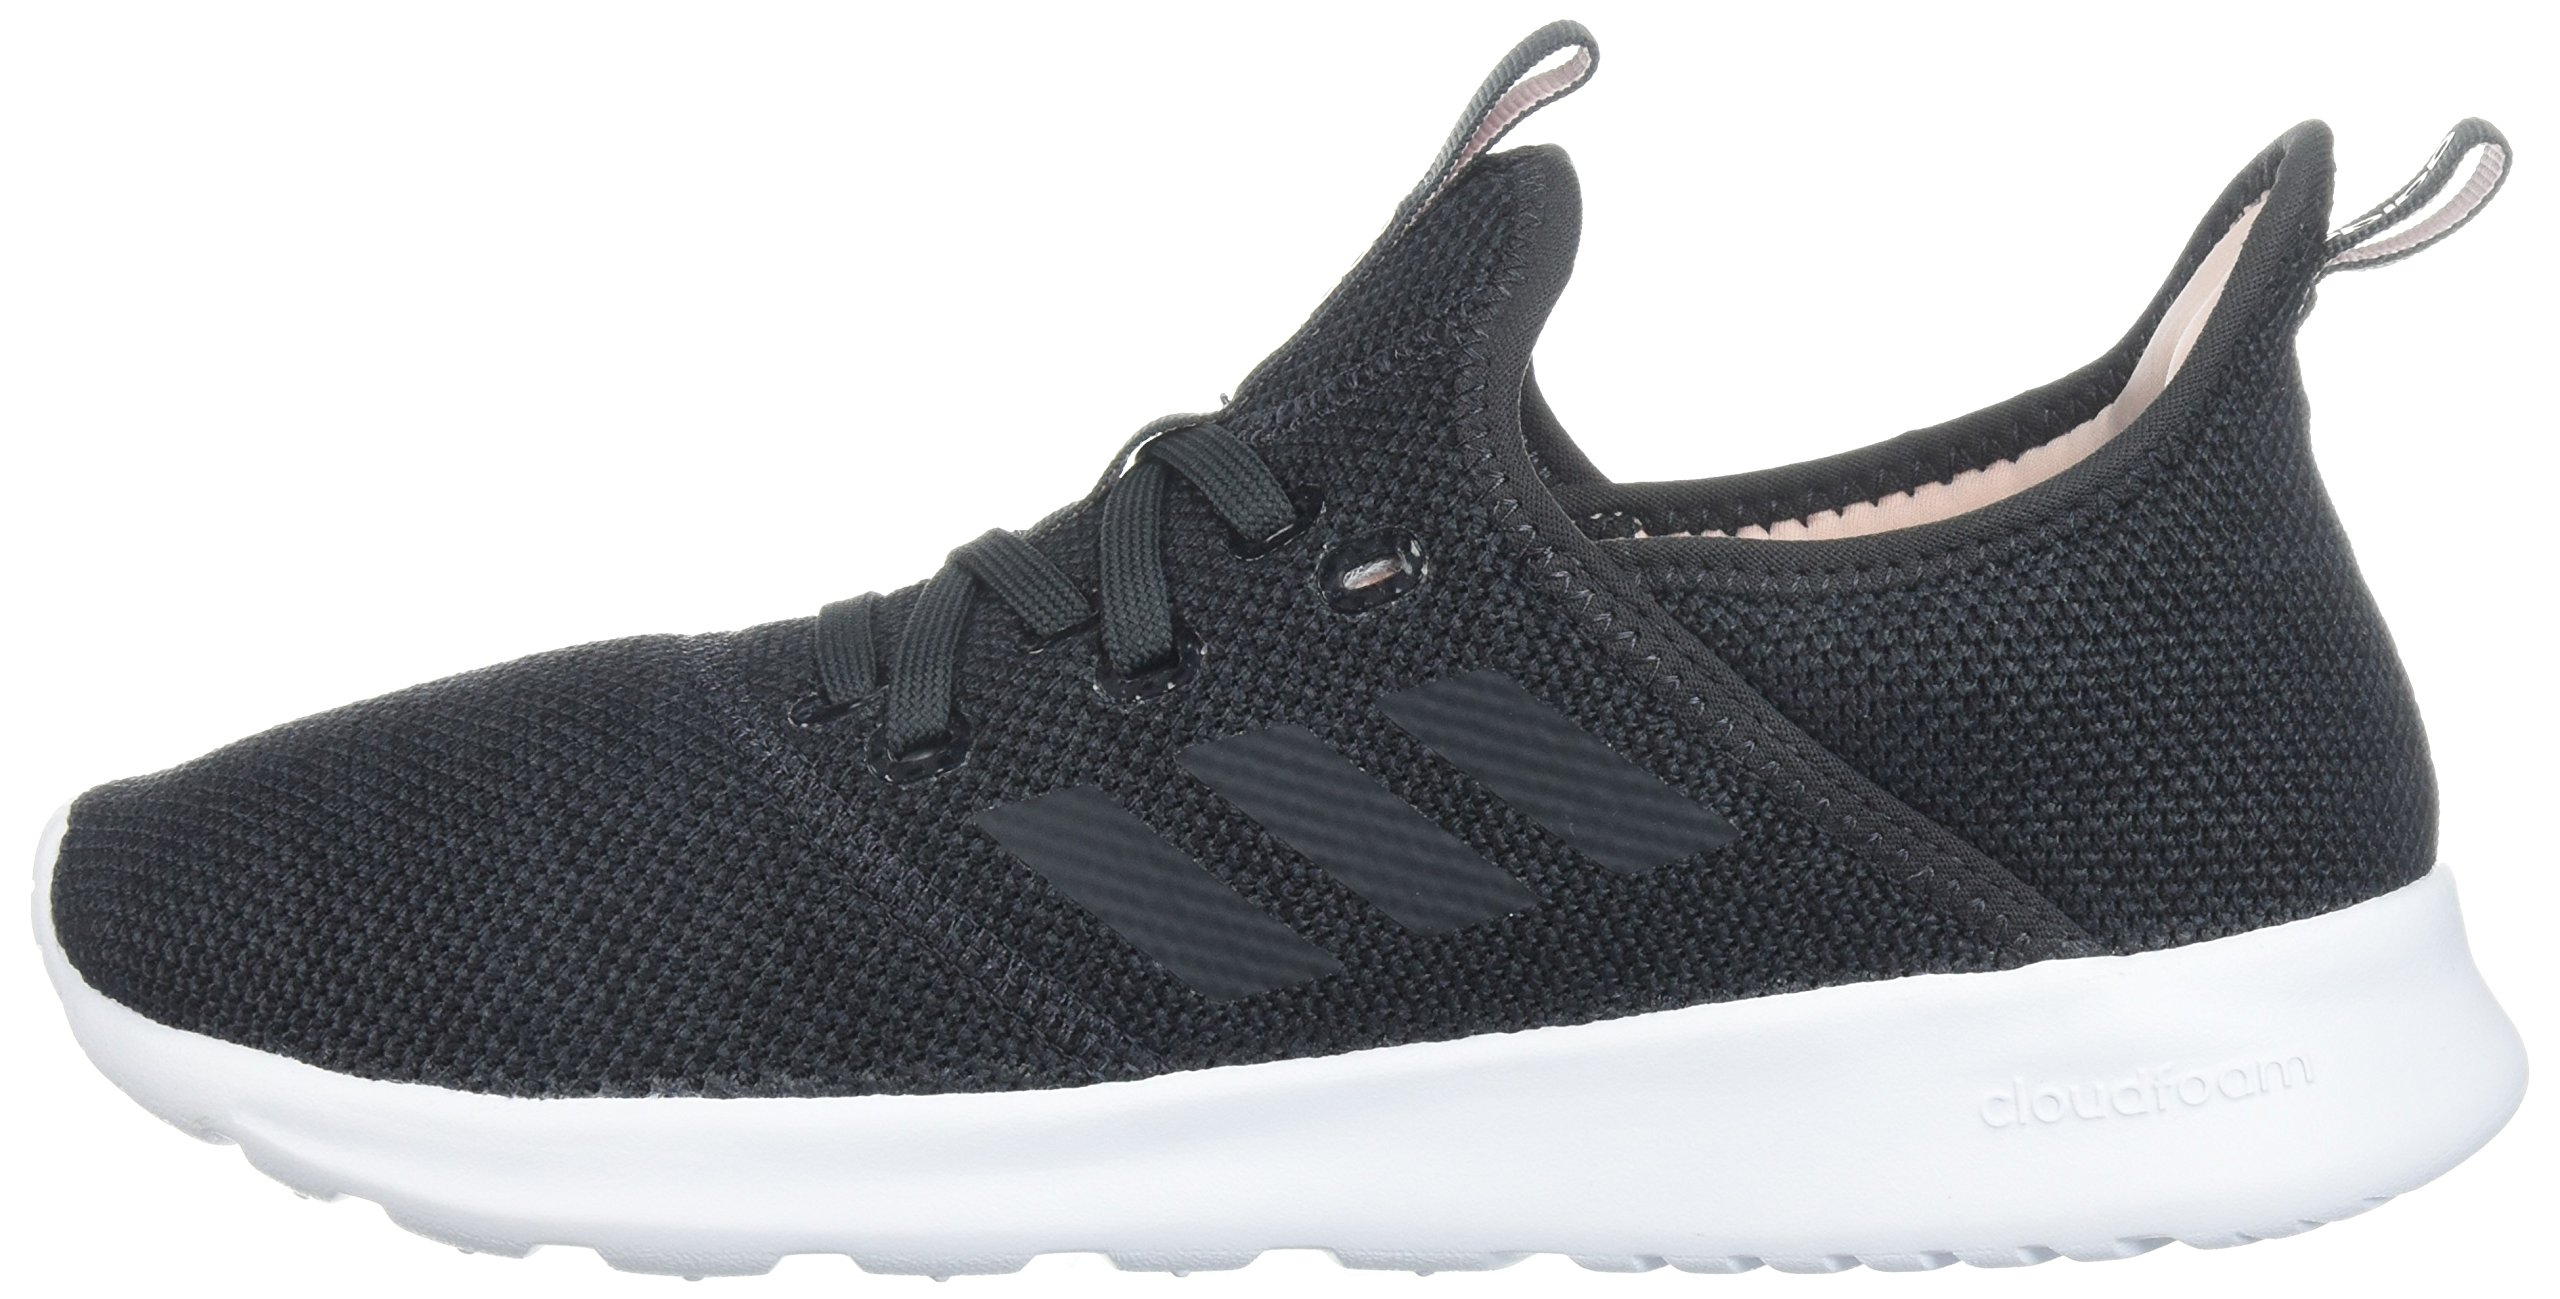 adidas Performance Women's Cloudfoam Pure Running Shoe, Carbon/Carbon, 5 M US by adidas (Image #5)